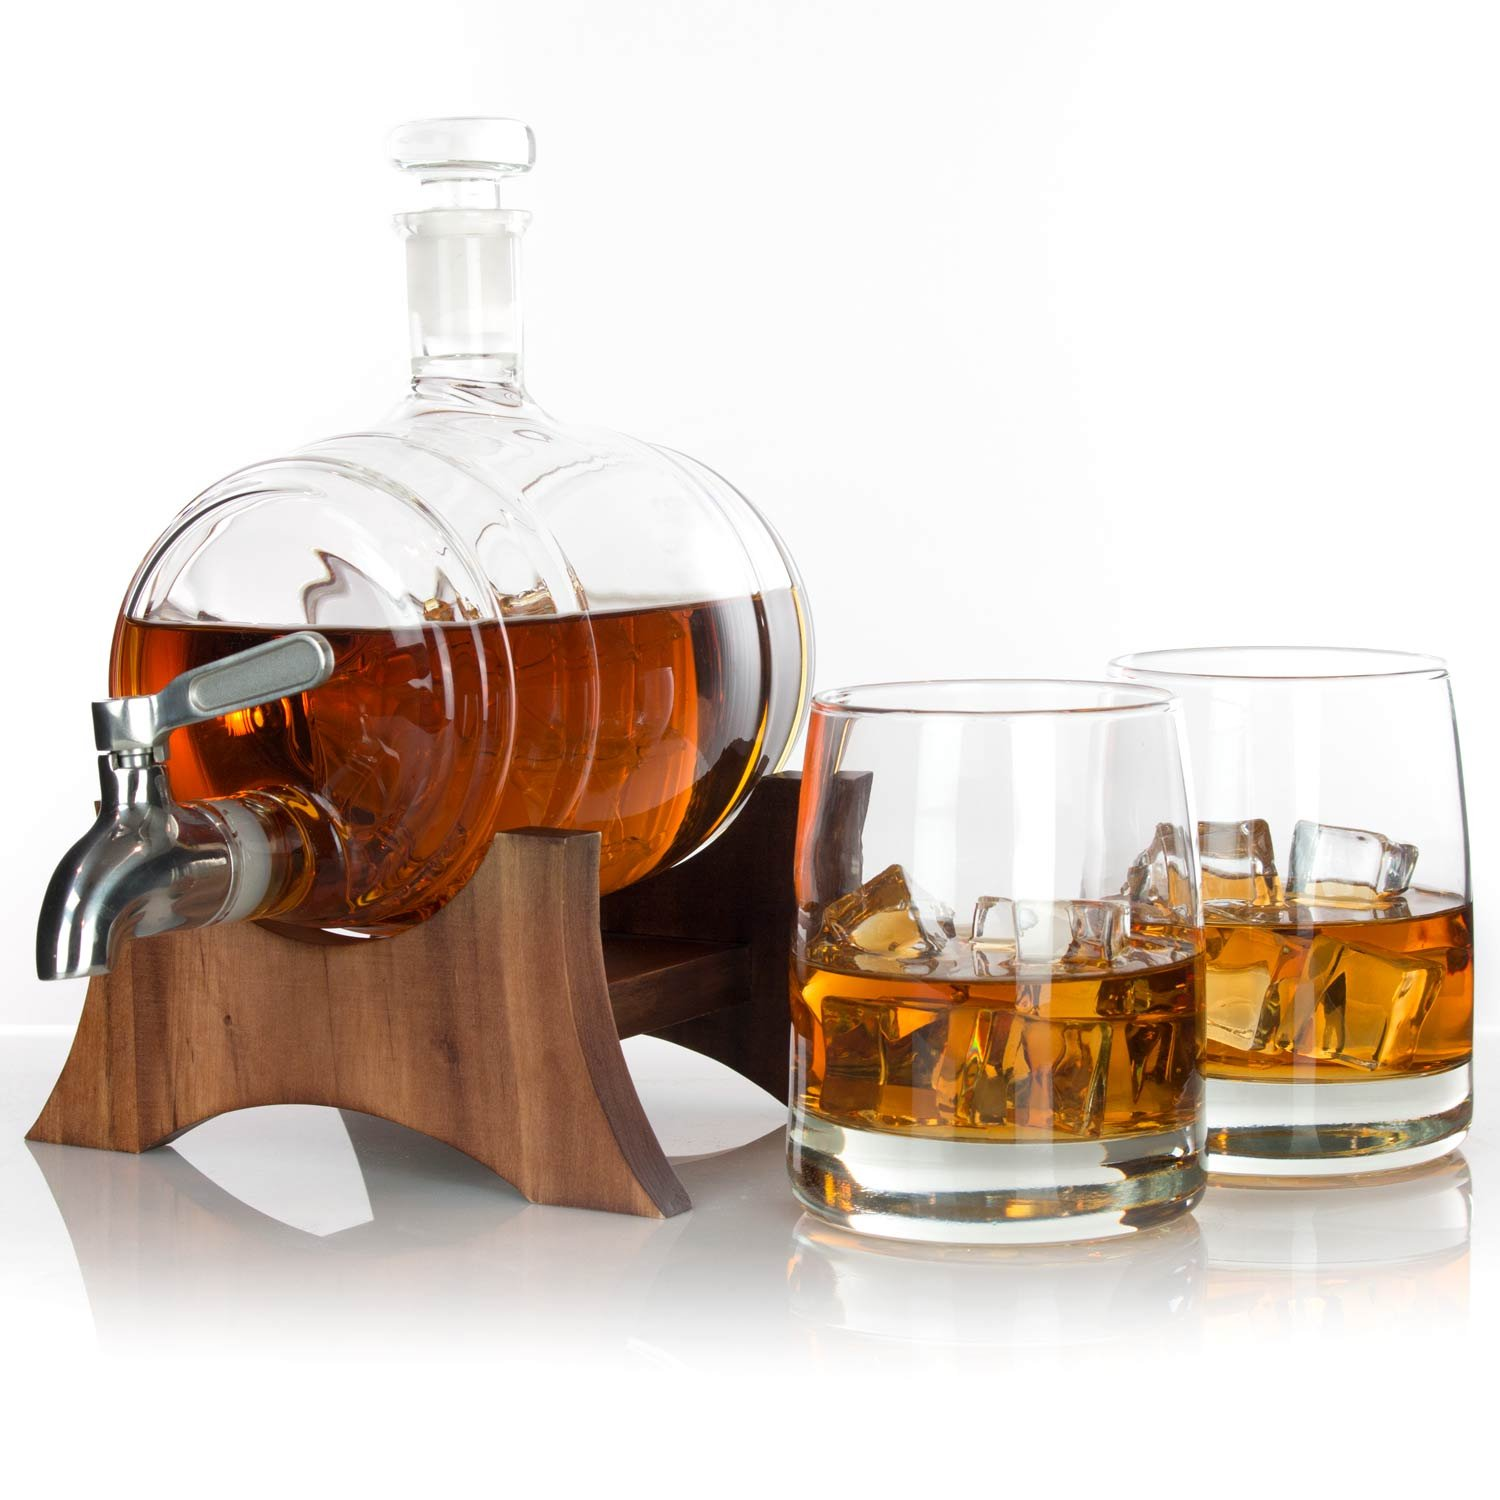 Atterstone Barrel Whiskey Decanter Set / Full set with two Whiskey Glasses, Custom Decanter Stand, Whiskey Stone Set, Stainless Steel Dispenser and funnel by Atterstone (Image #2)